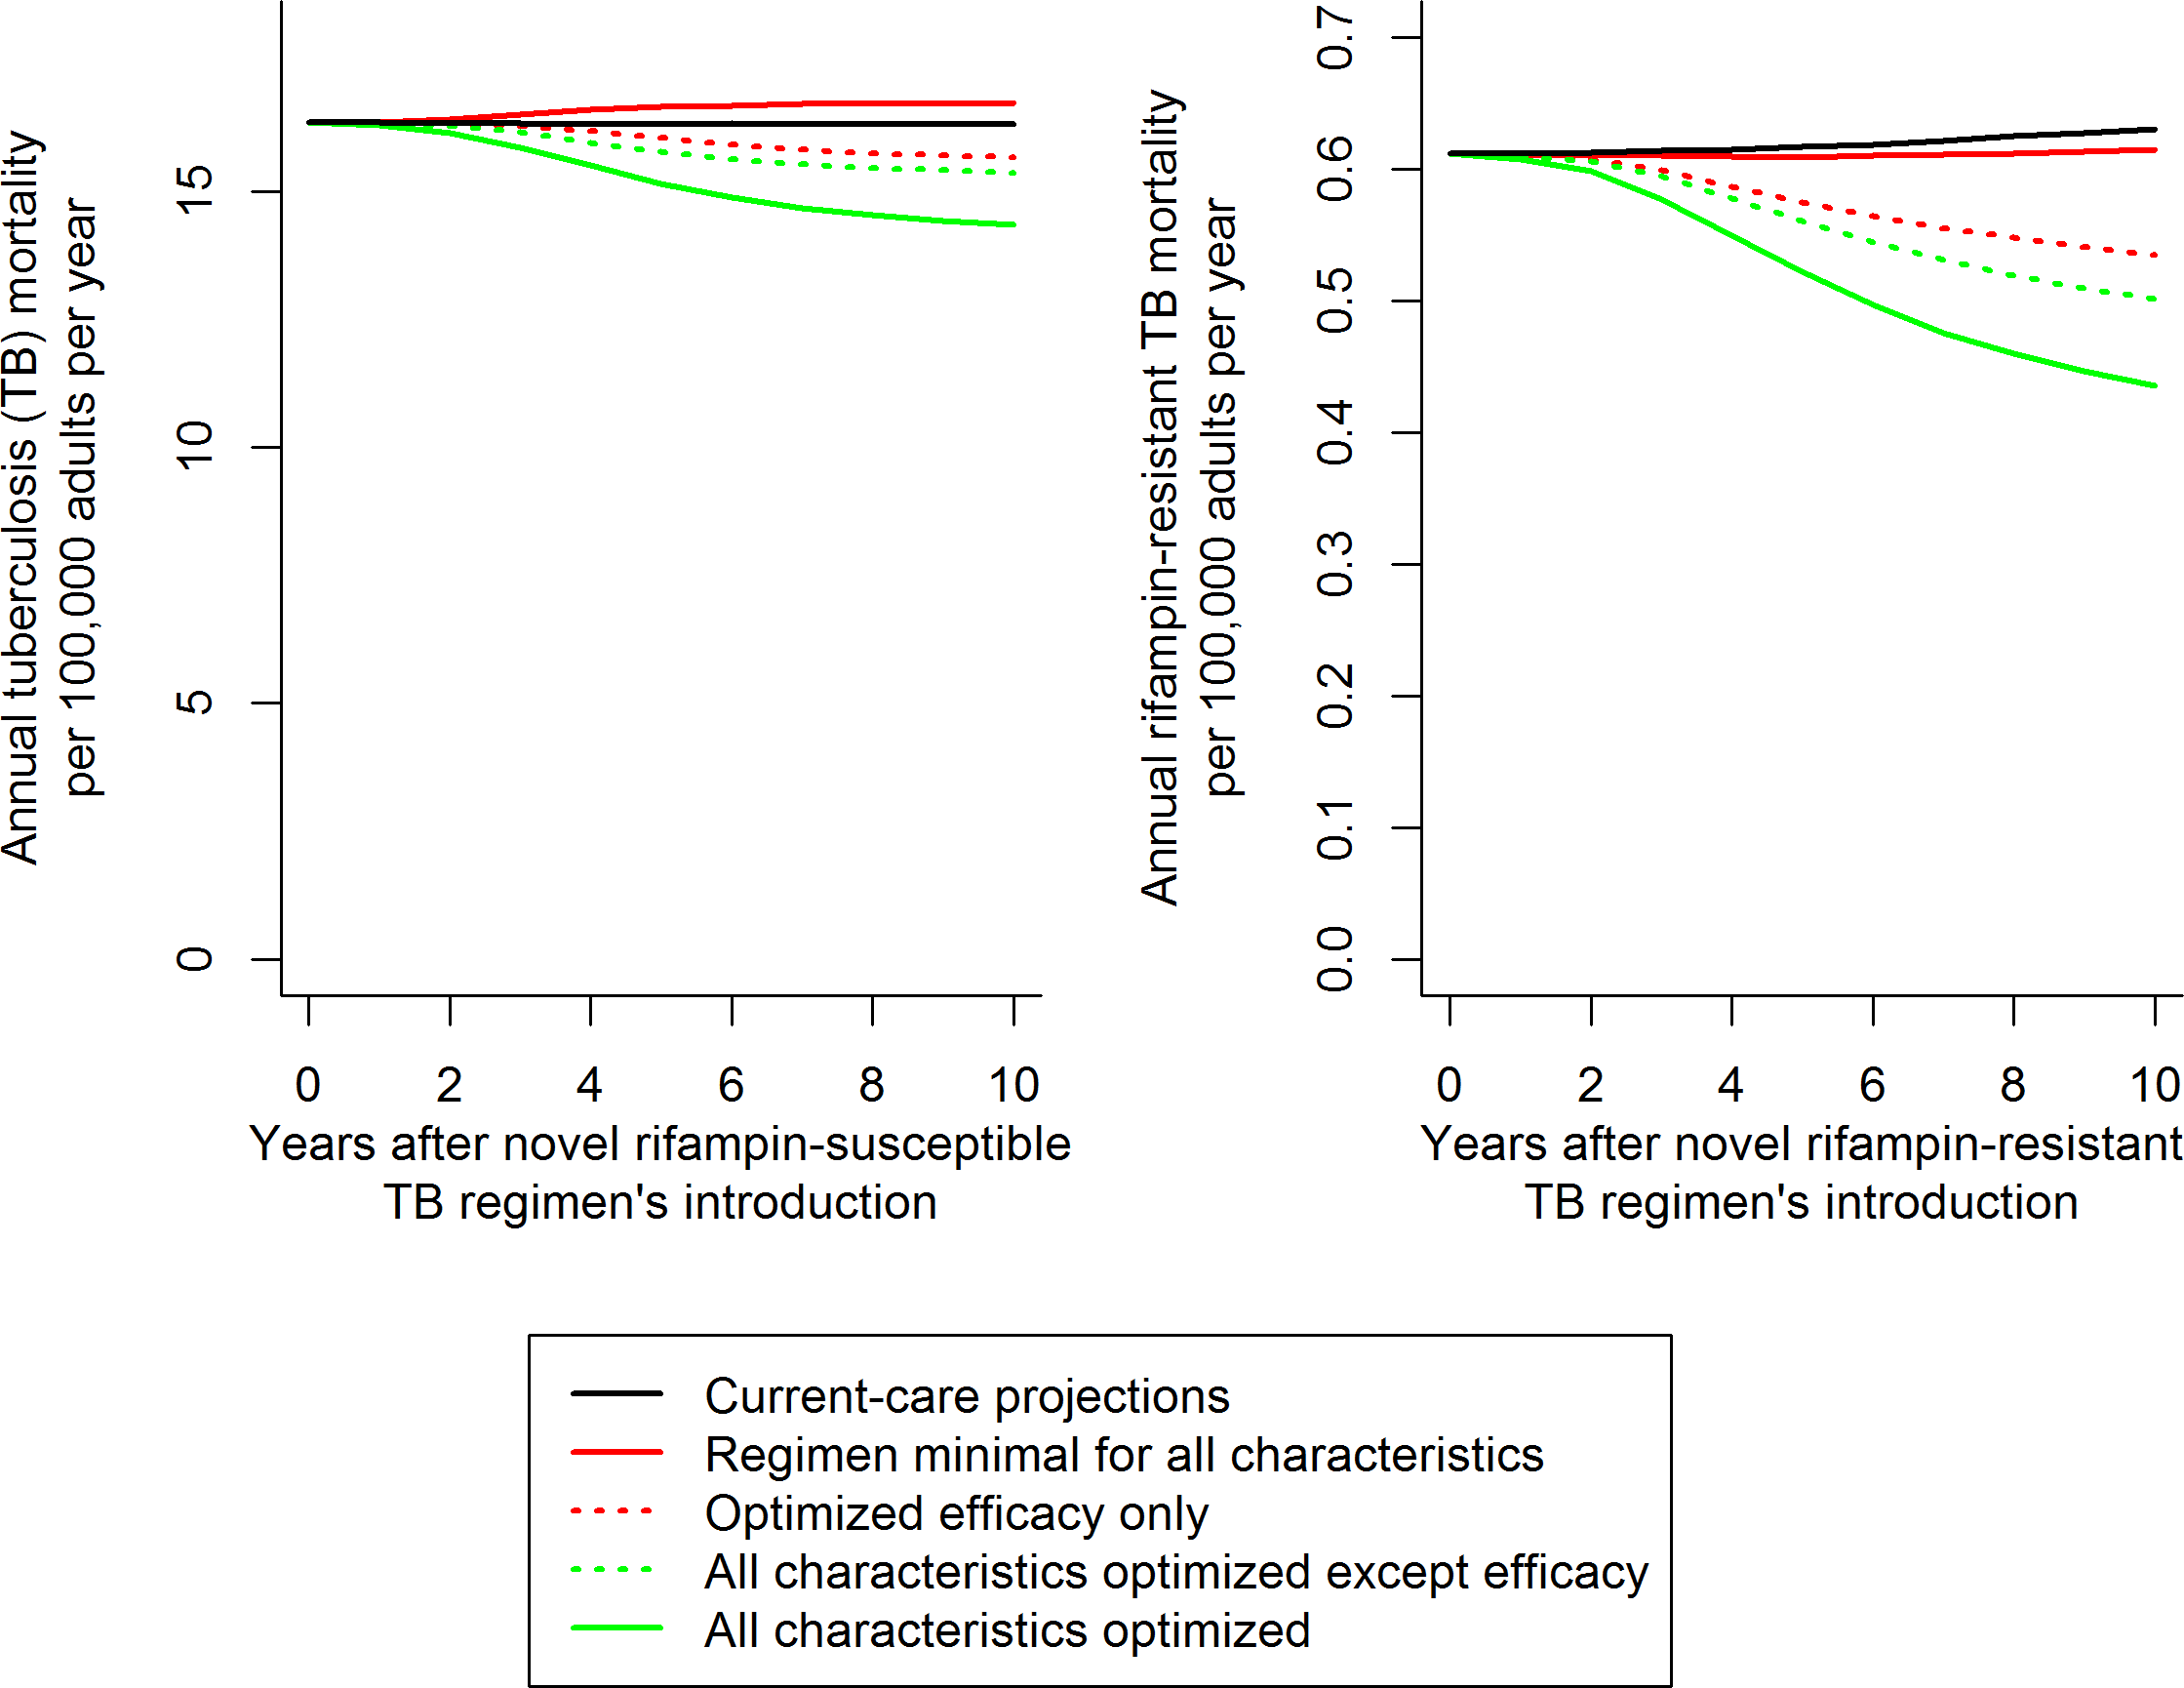 Illustration of resulting mortality trends and comparisons for different novel RS and RR TB regimens.